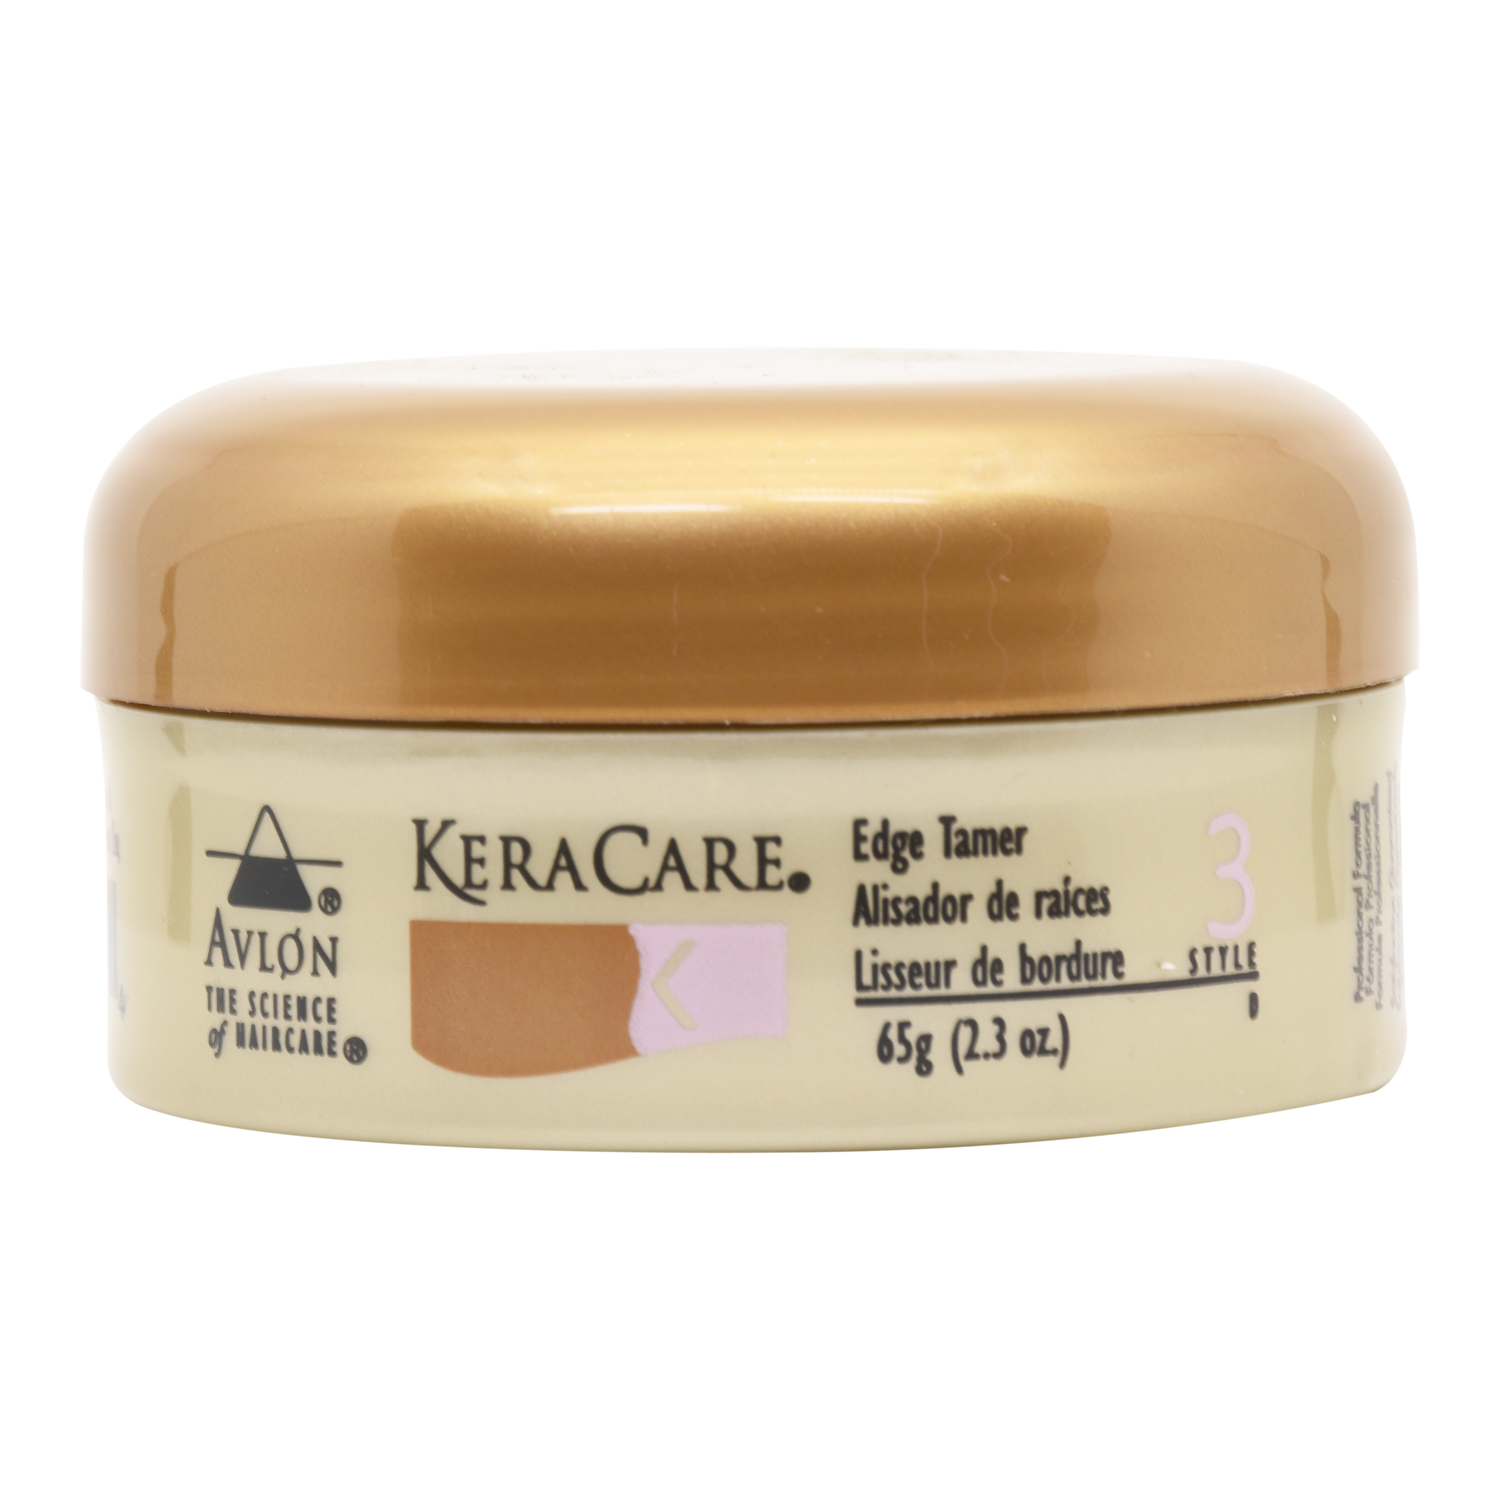 Keracare Edge Tamer For Natural Hair